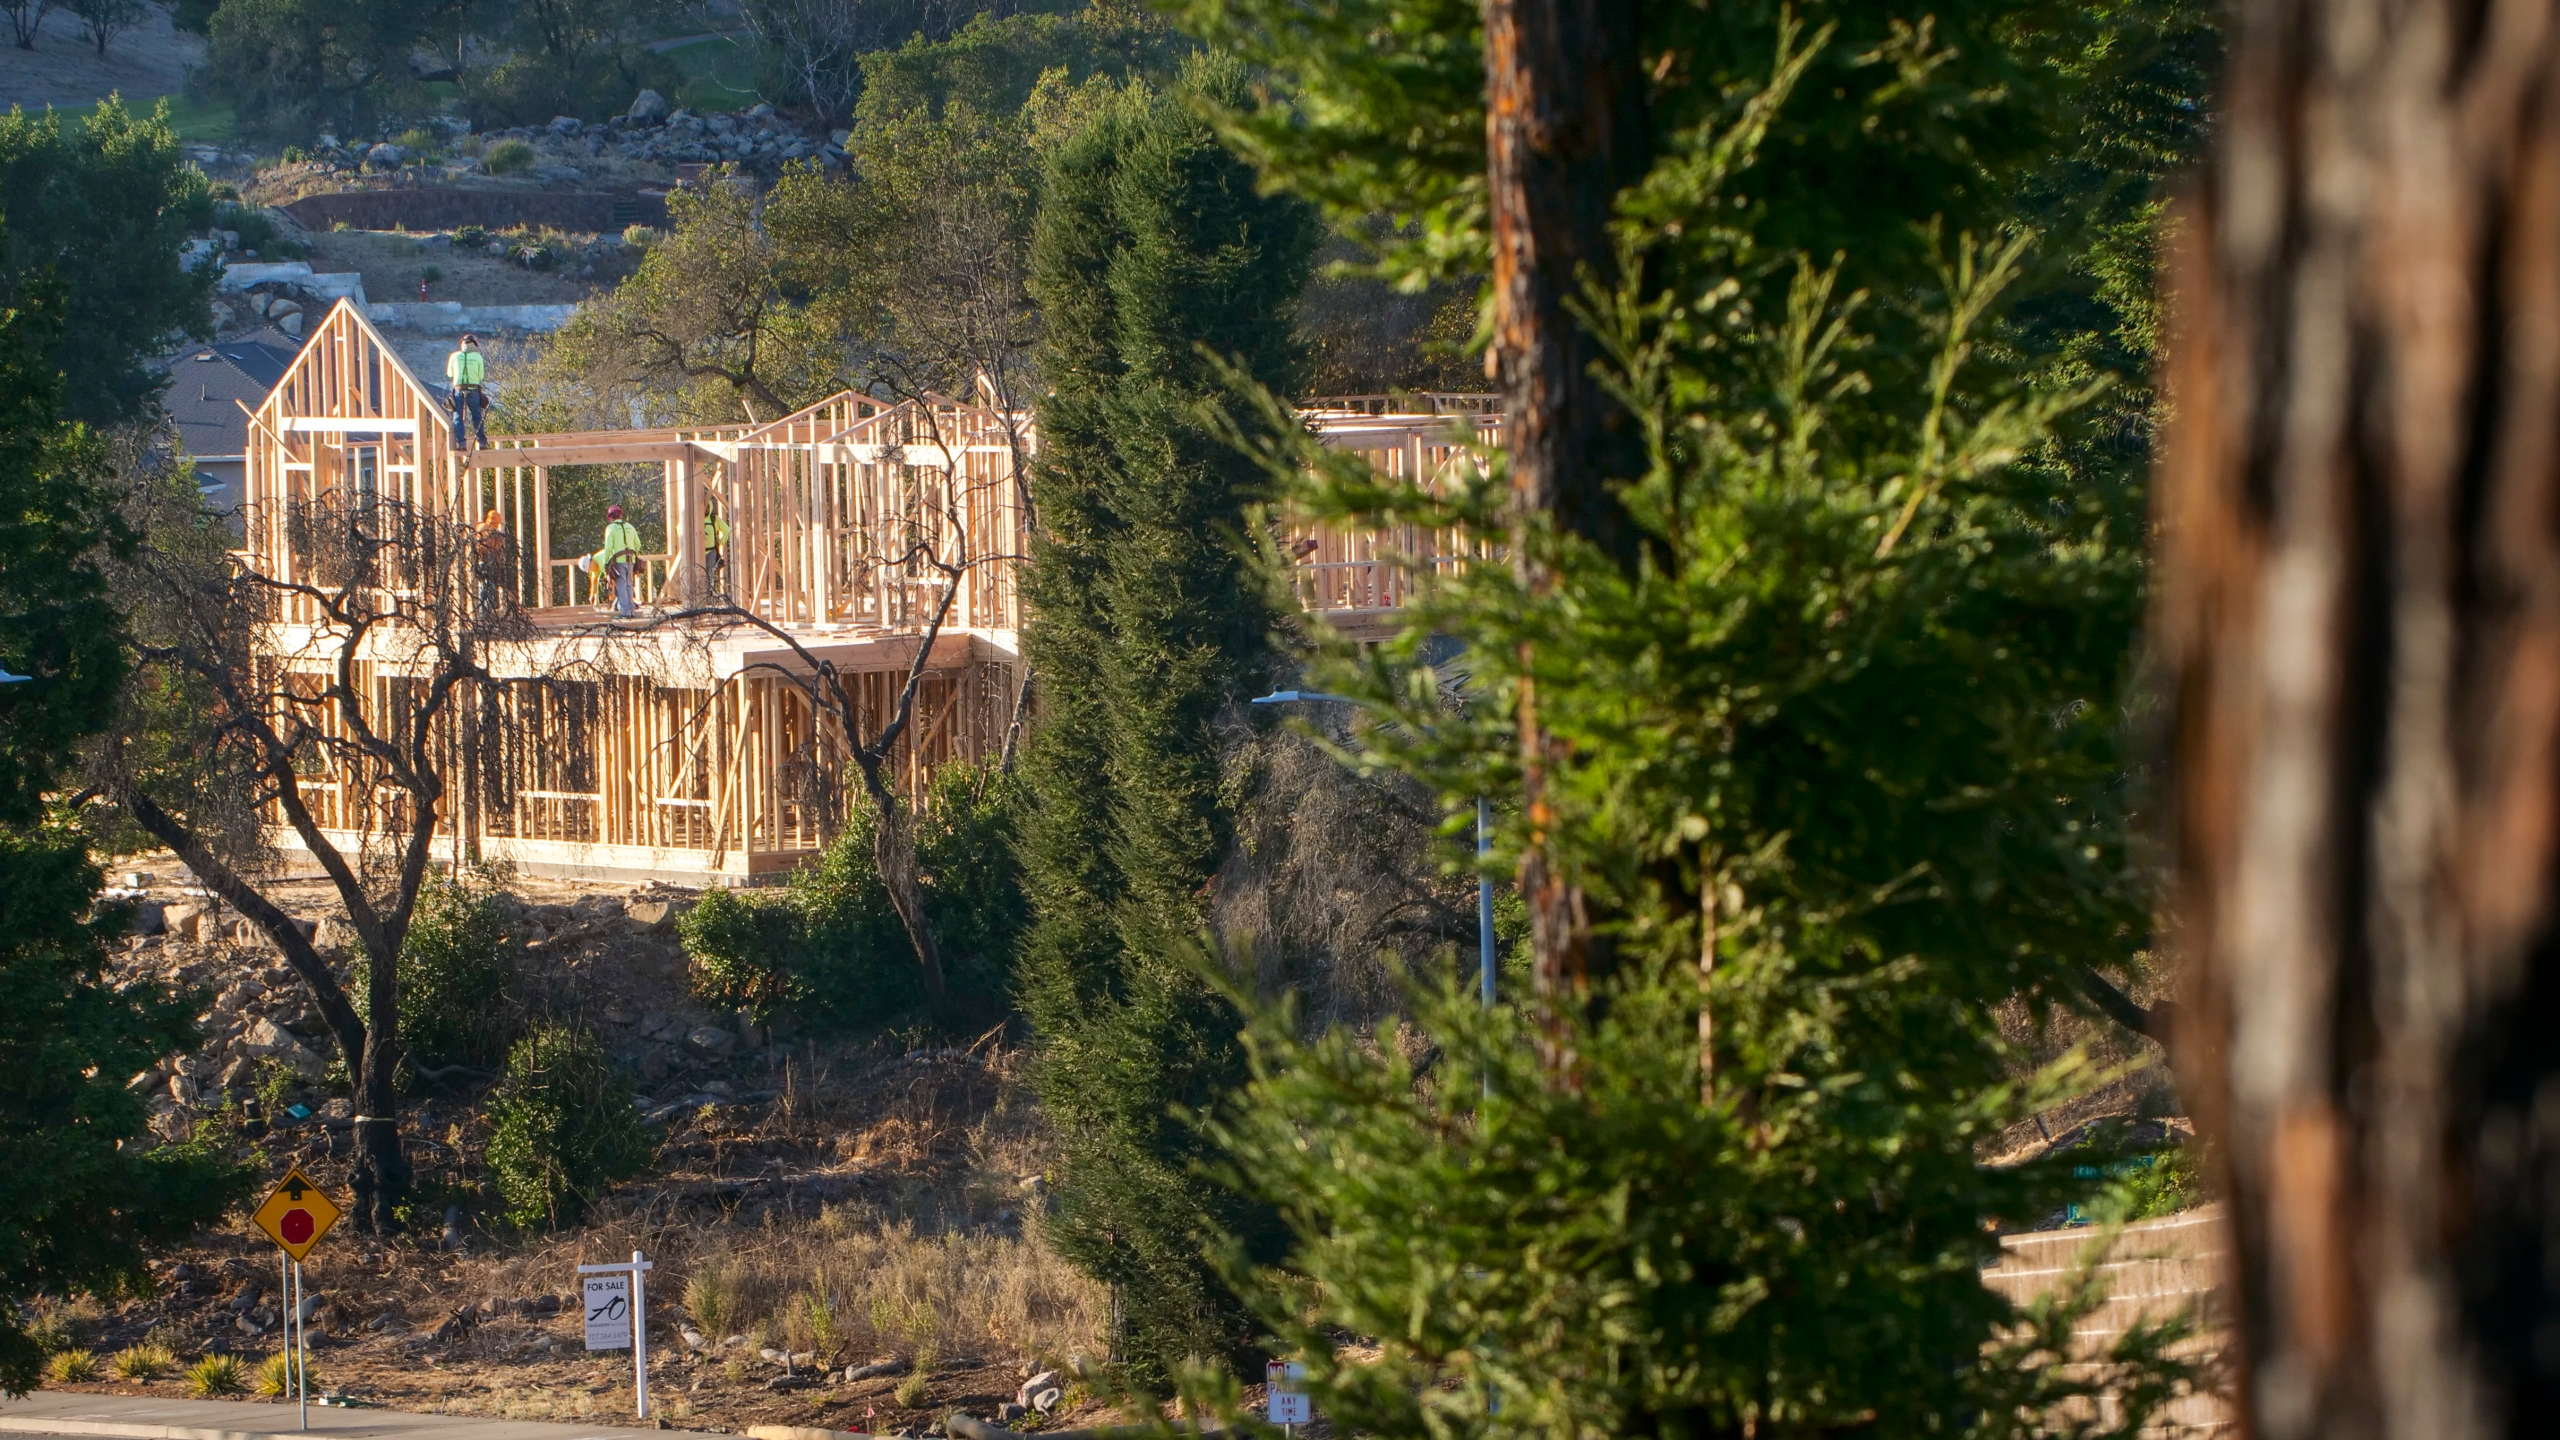 In this Tuesday, Nov. 5, 2019, file photo, builders work on a new home in Santa Rosa, Calif. California state and local officials are incentivizing rebuilding in areas destroyed by wildfires at a time when people should be redirected away from those areas if the state wants to reduce the economic and human impact of increasingly destructive wildfires, according to a report published Thursday, June 10, 2021. (AP Photo/Lacy Atkins, File)